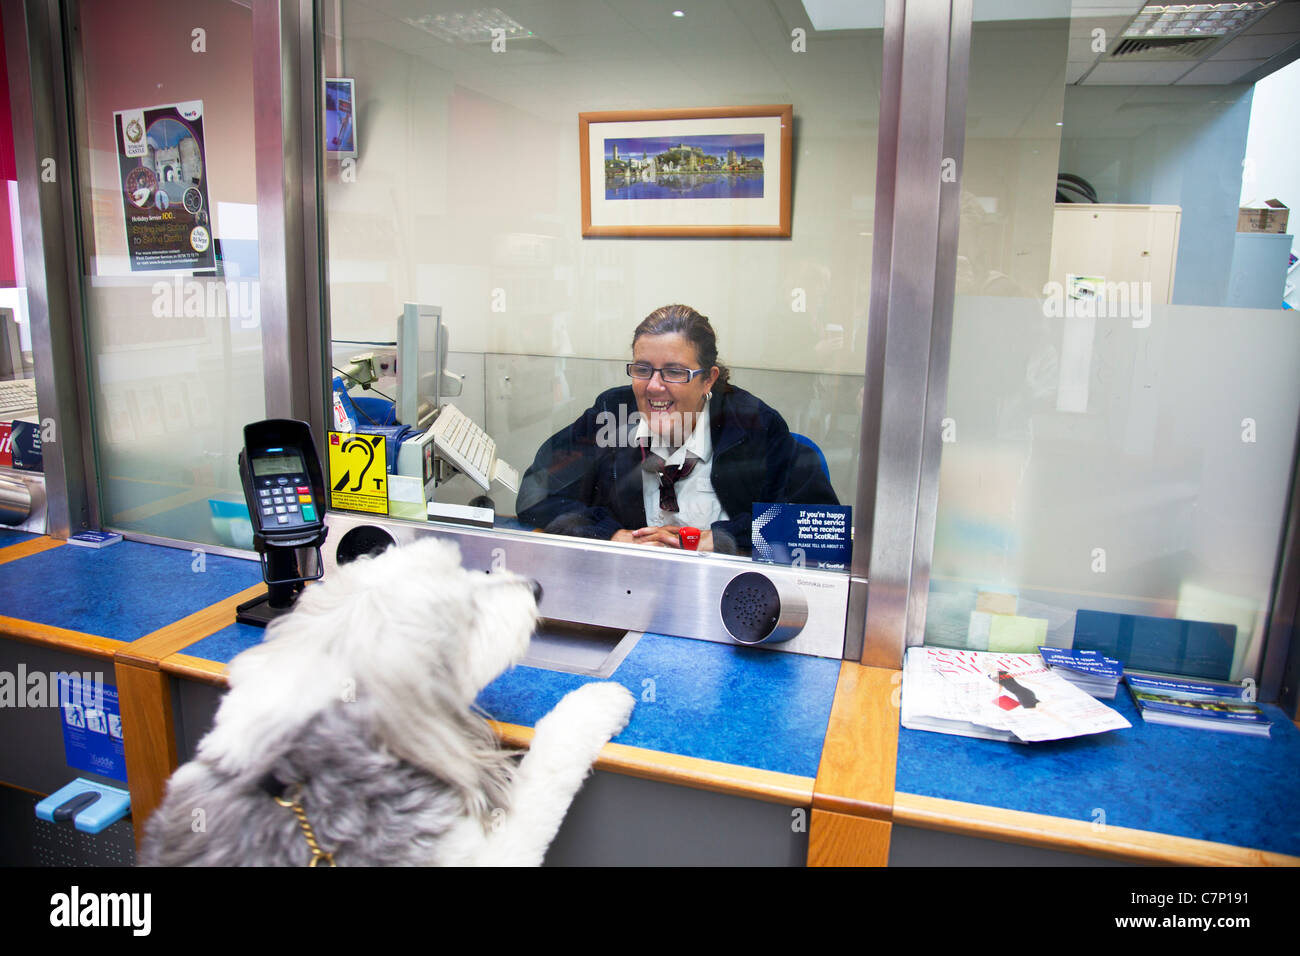 Bearded collie (movement on dog) buying, purchasing ticket at Stirling rail station lady smiling at pet before journey - Stock Image